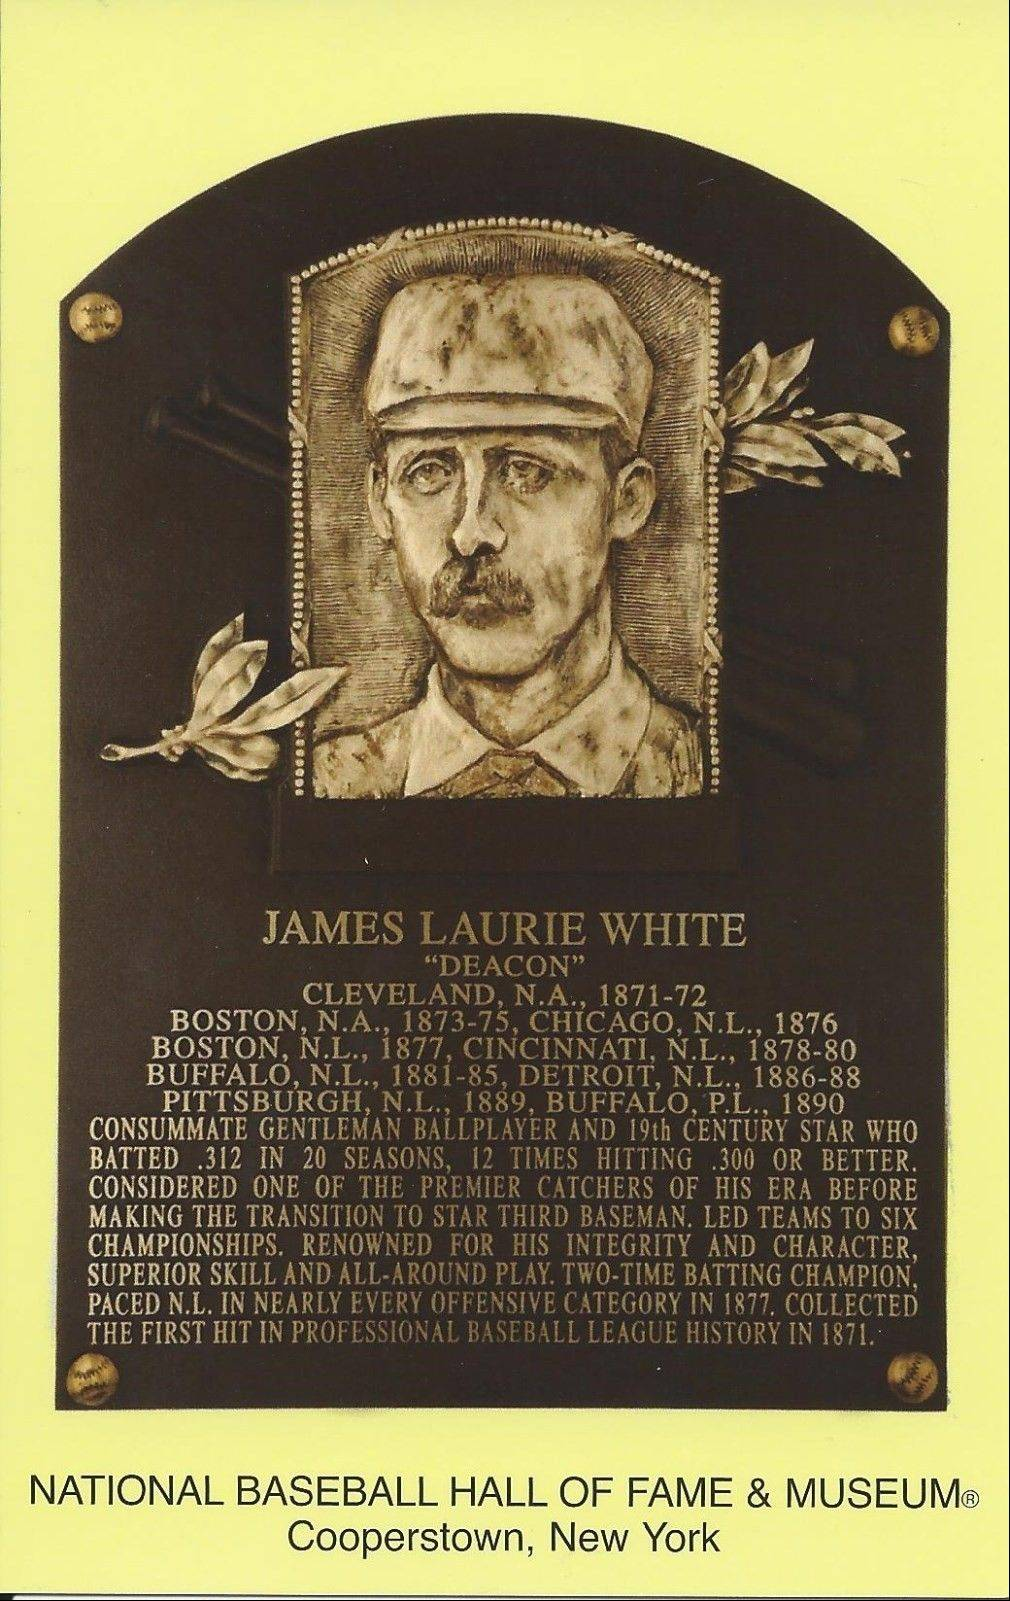 James �Deacon� White�s plaque in the National Baseball Hall of Fame